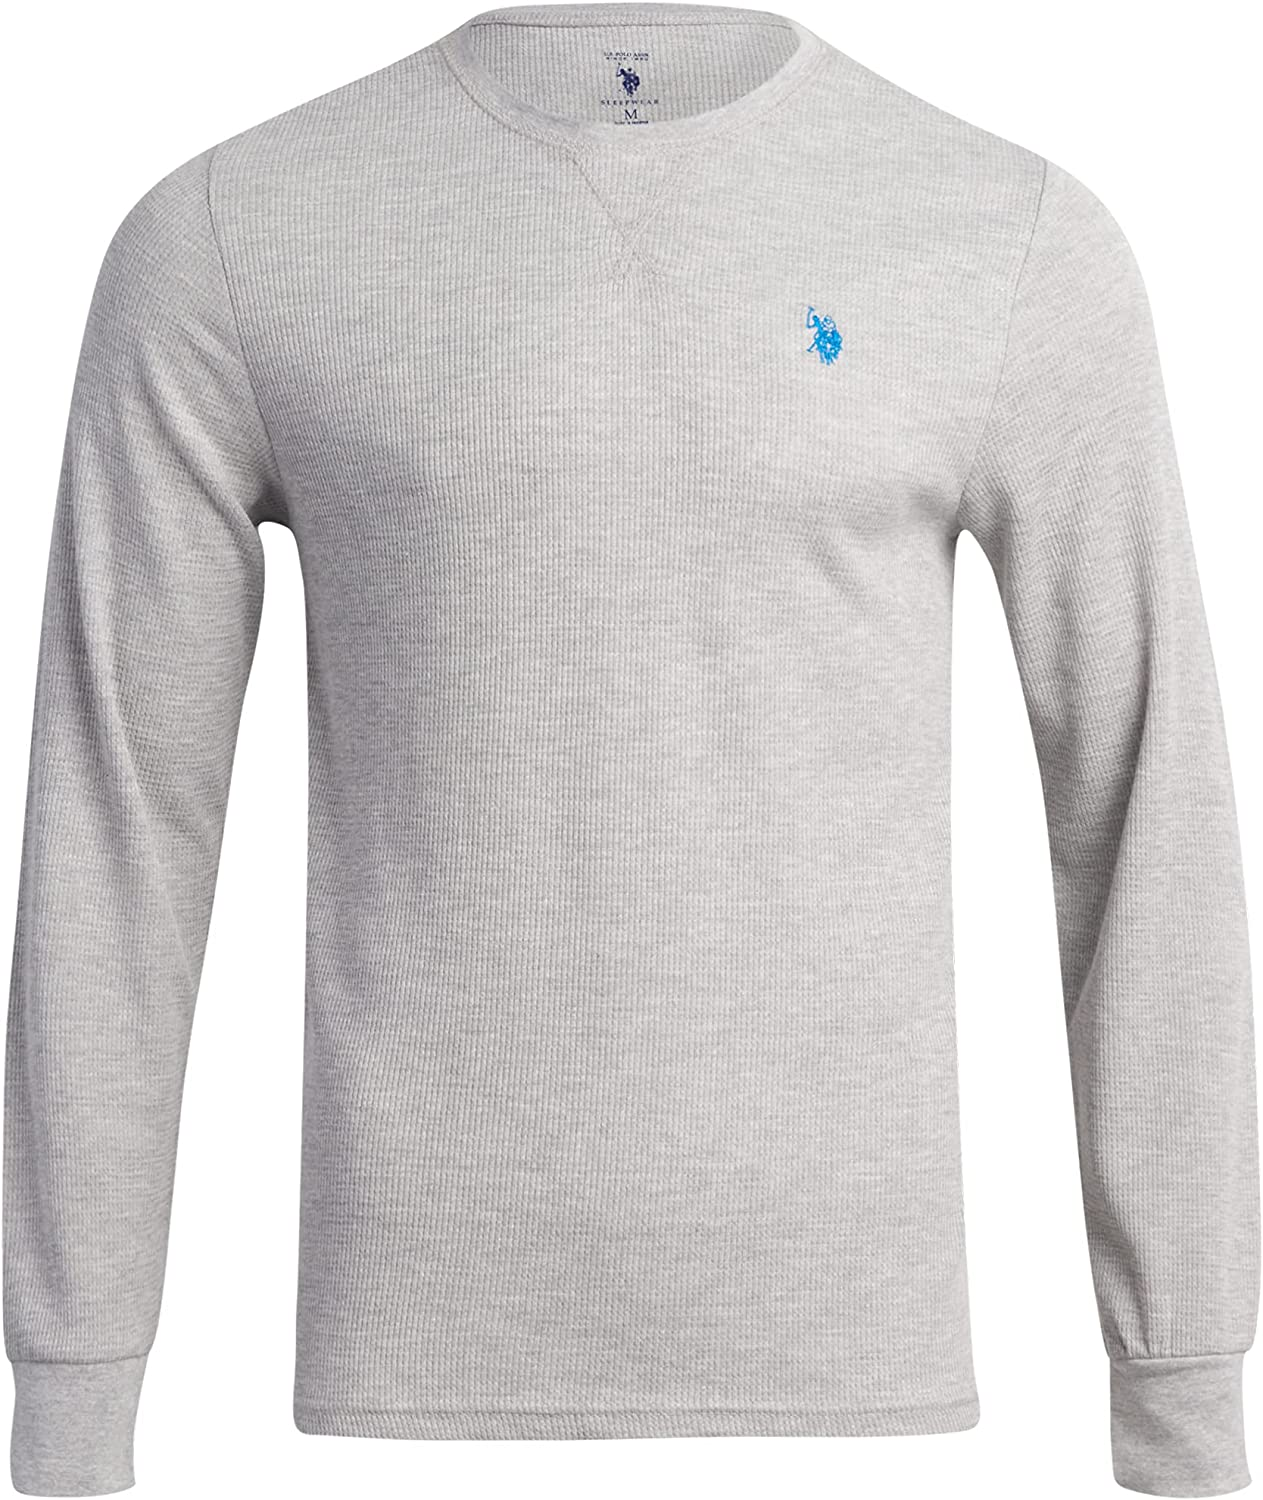 U.S. Polo Assn. Men?s Thermal Shirt ? Long Sleeve Waffle Knit Top, Size X-Large, Heather Grey